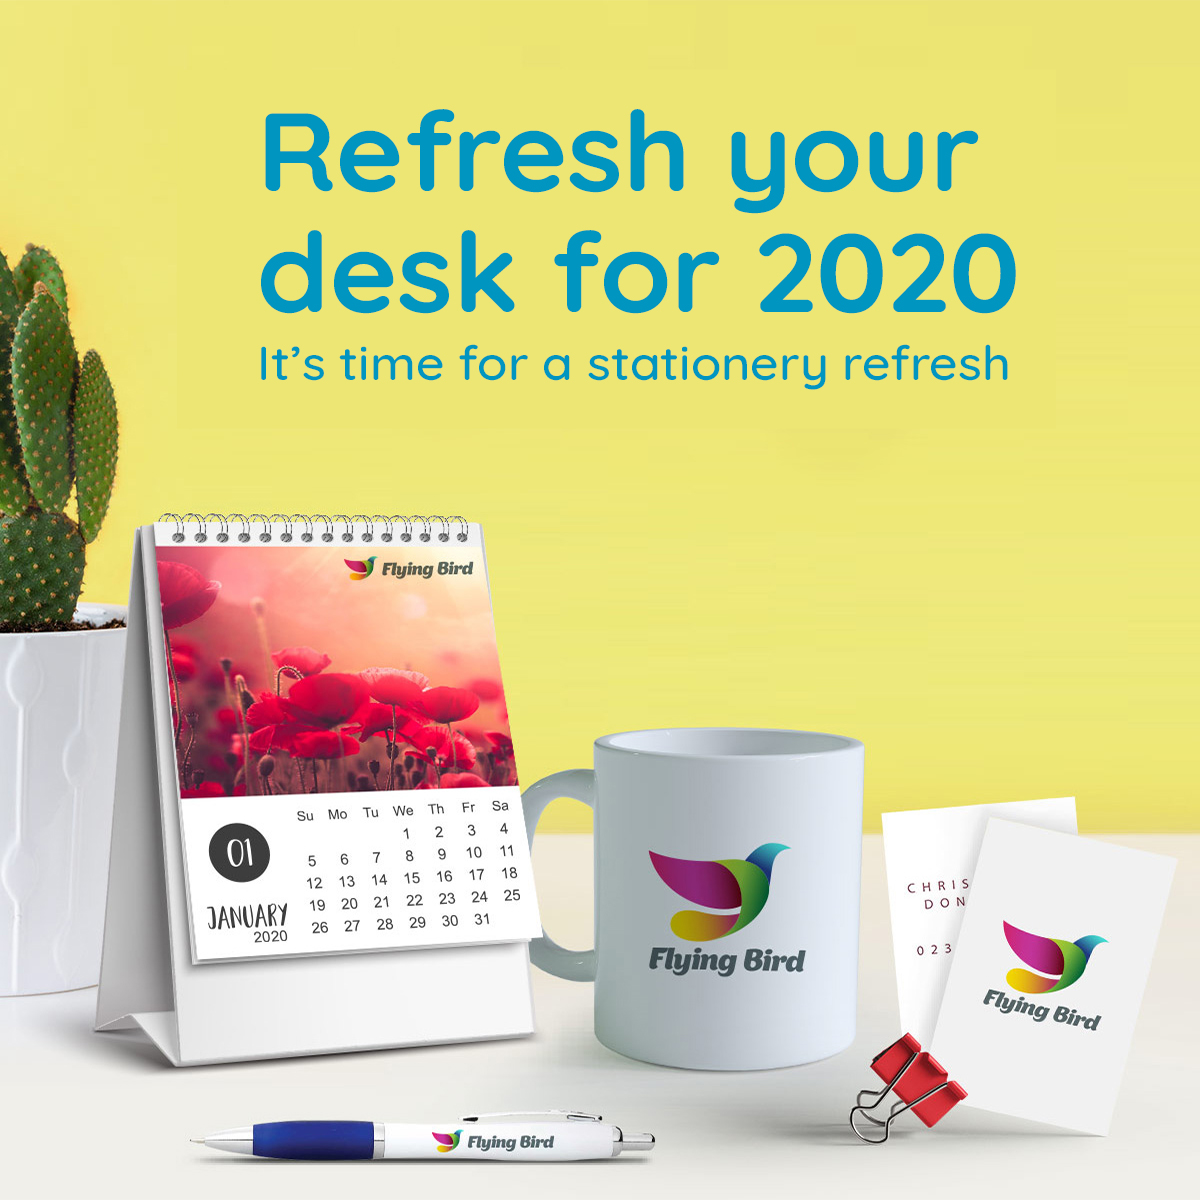 Refresh stationery on your desk for 2020